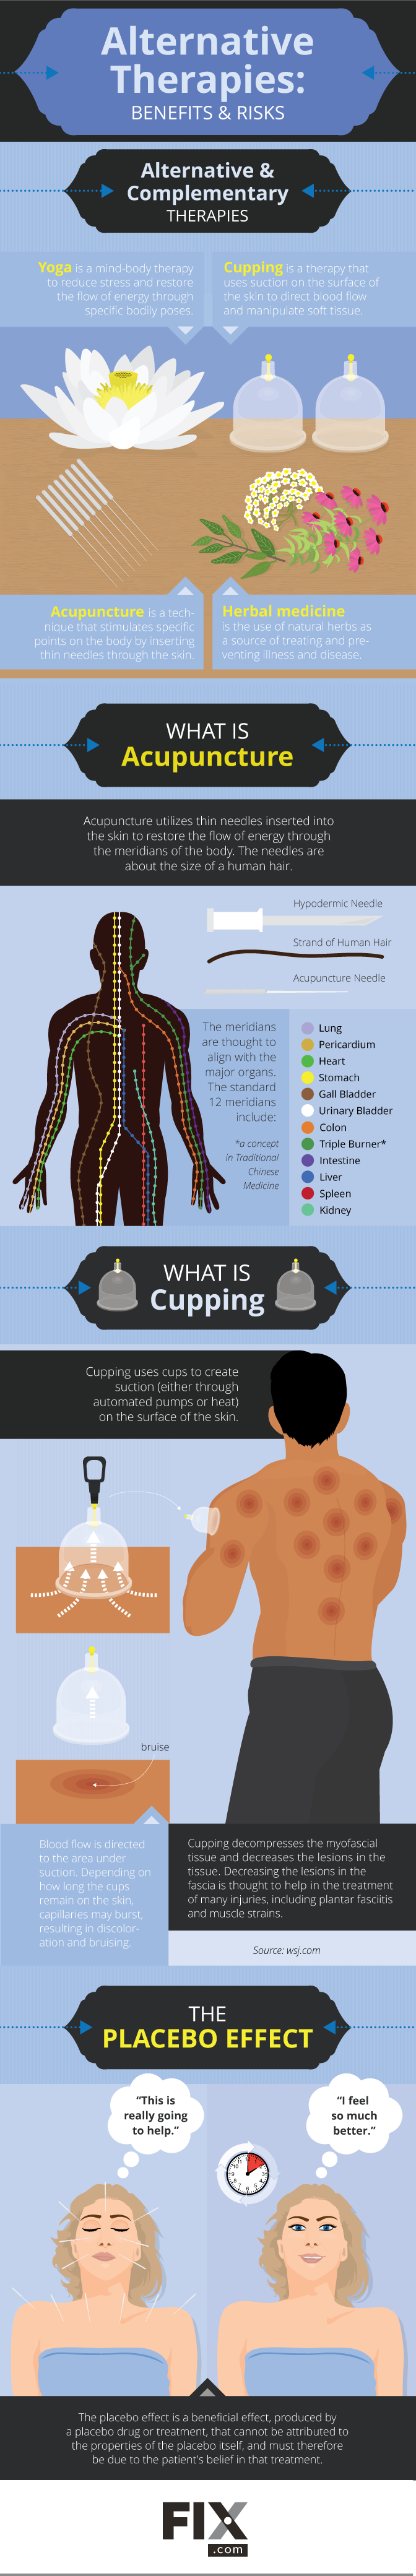 Comprehensive Guide to Alternative Health Therapies - Infographic